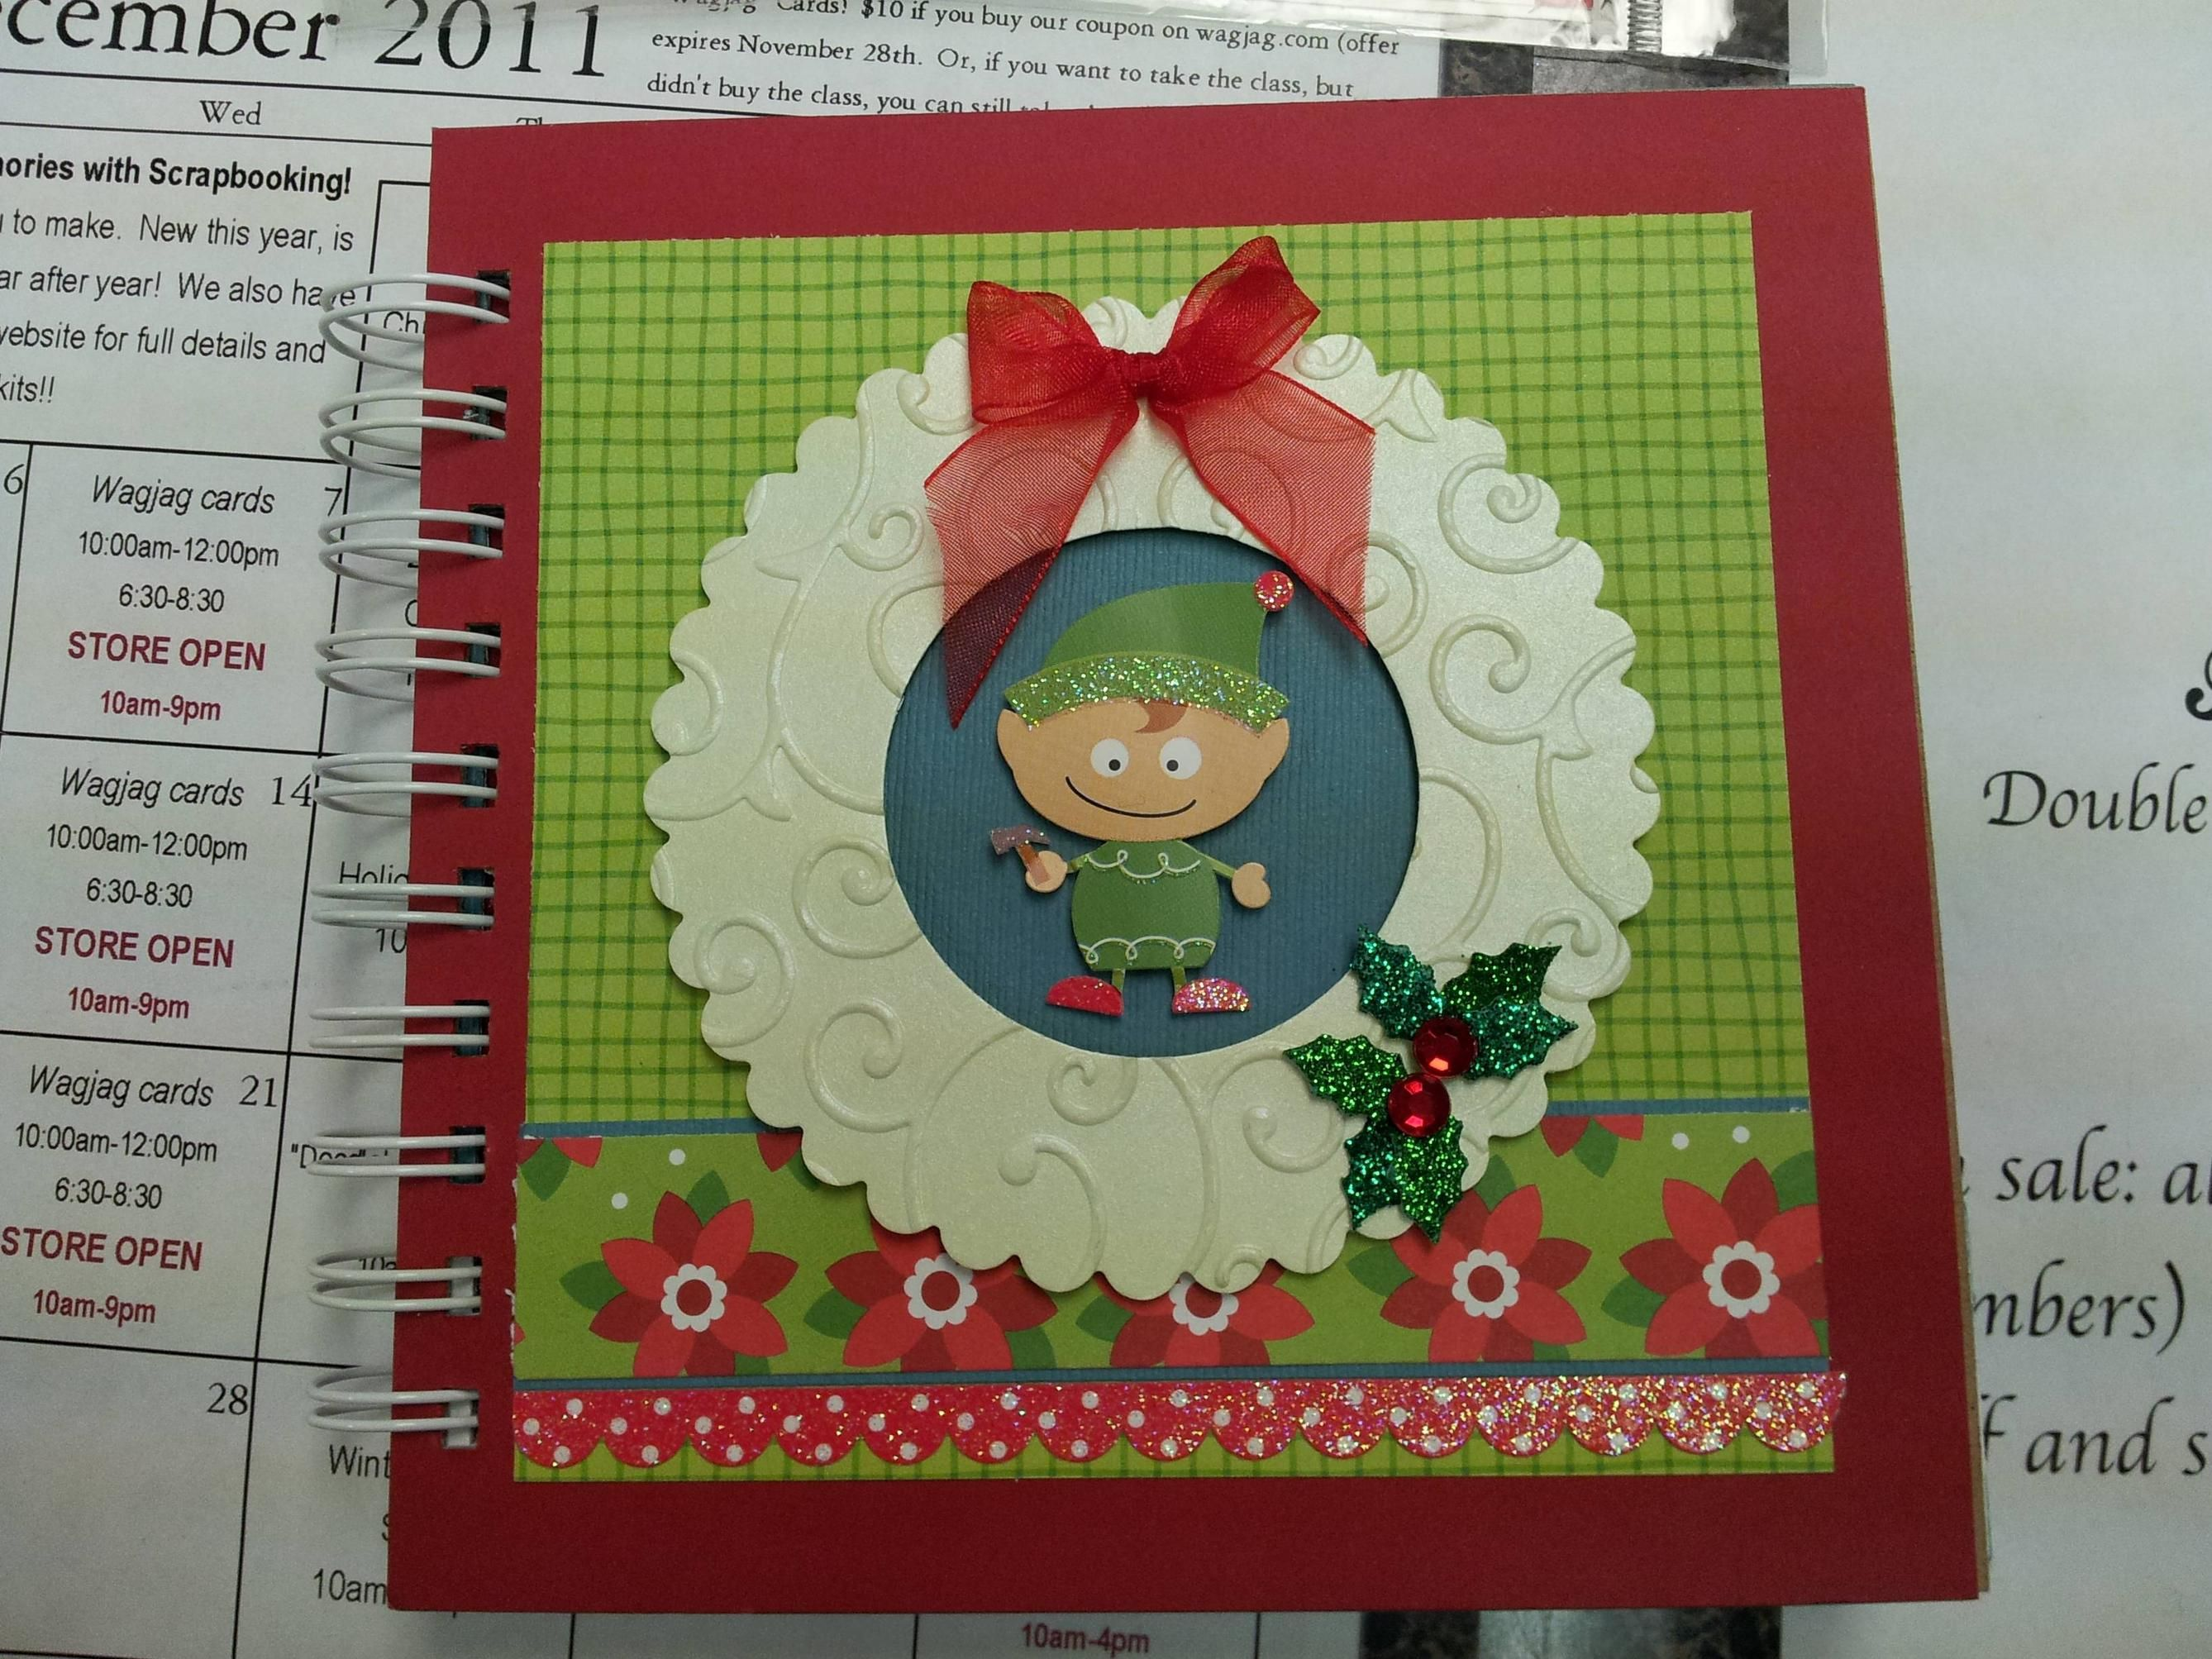 Making Memories With Scrapbooking Christmas book class